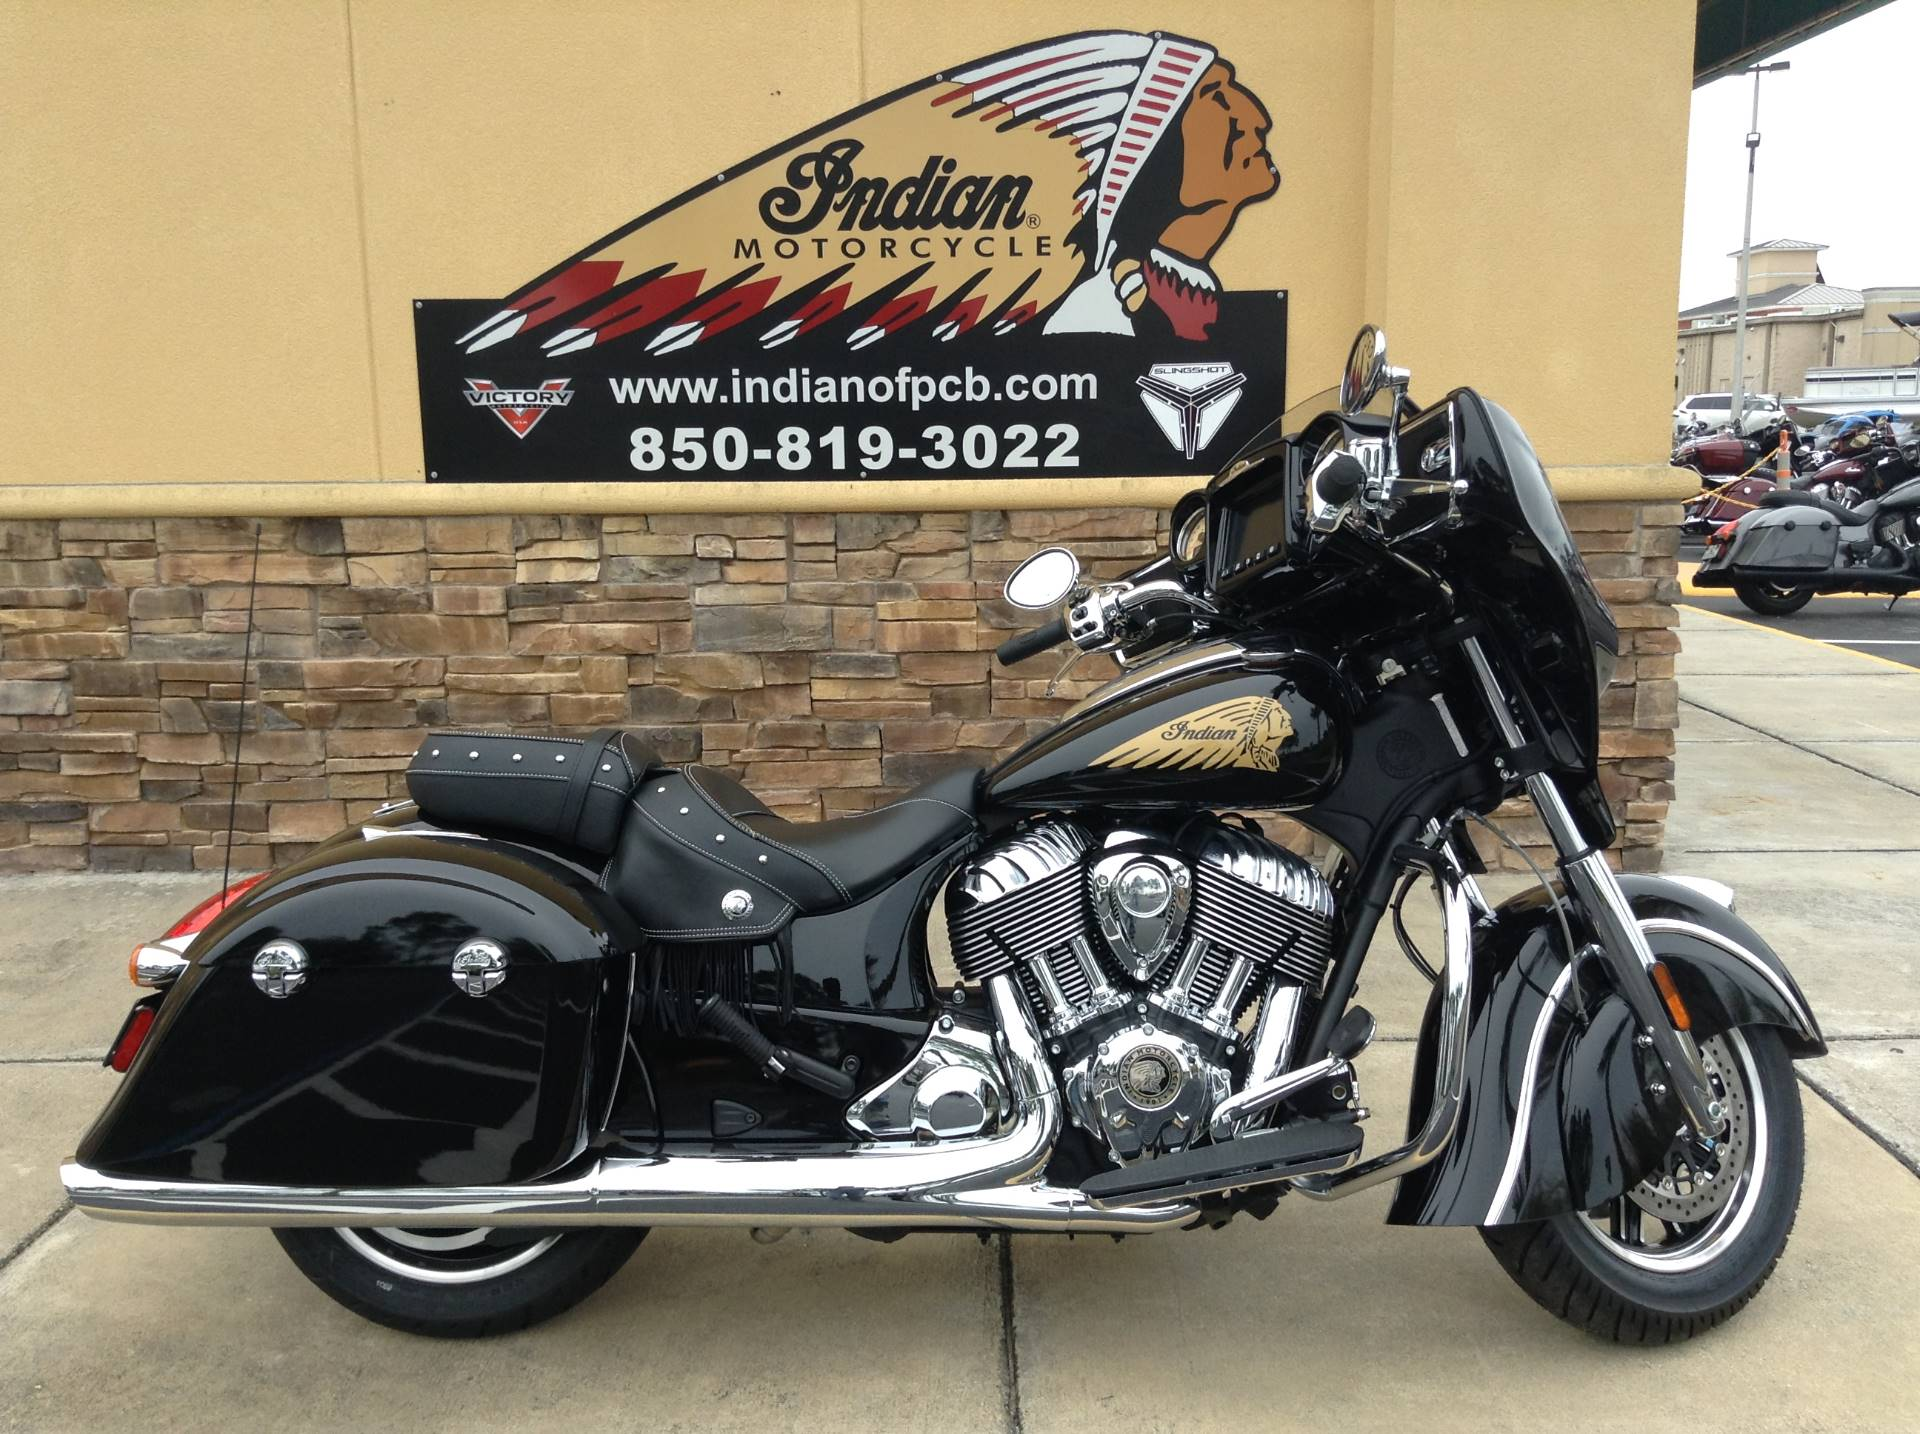 2019 Indian CHIEFTAIN in Panama City Beach, Florida - Photo 1